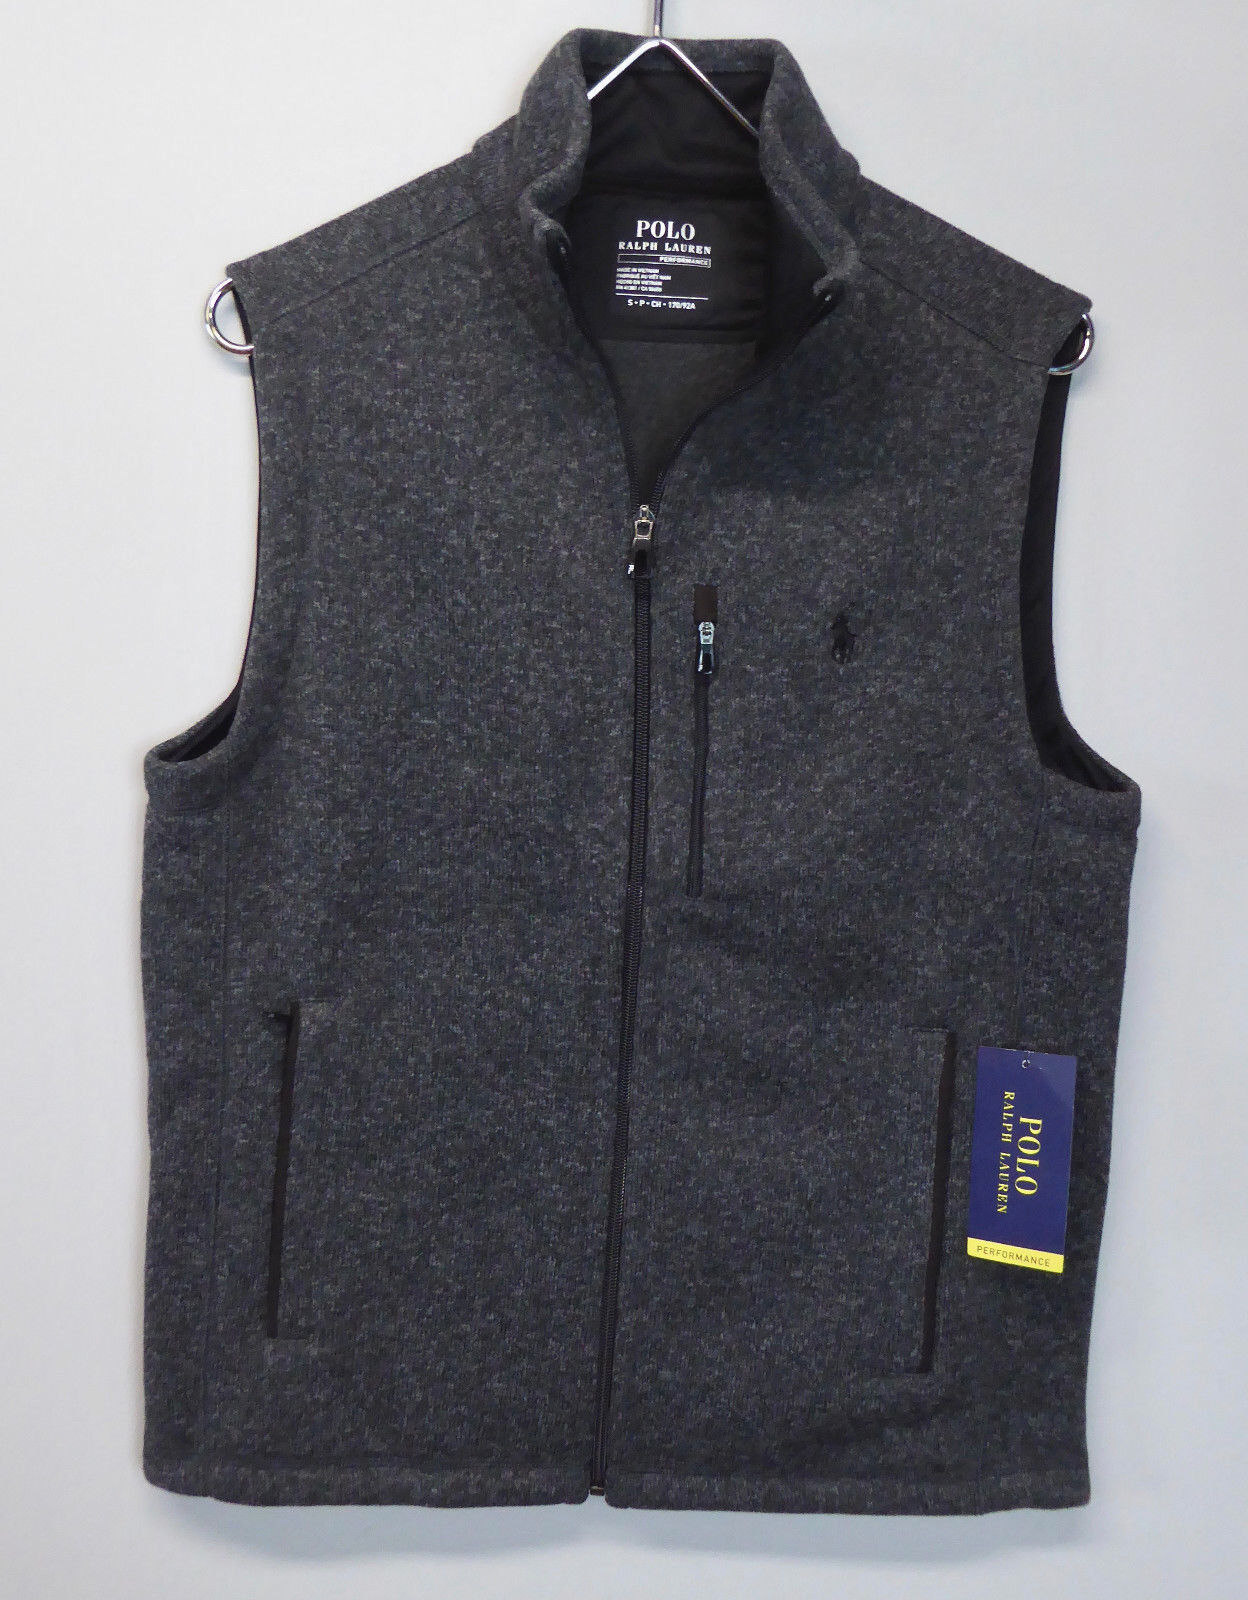 Polo Ralph Lauren Performance Full Zip Fleece Lined Vest NWT 125 Sweater grau